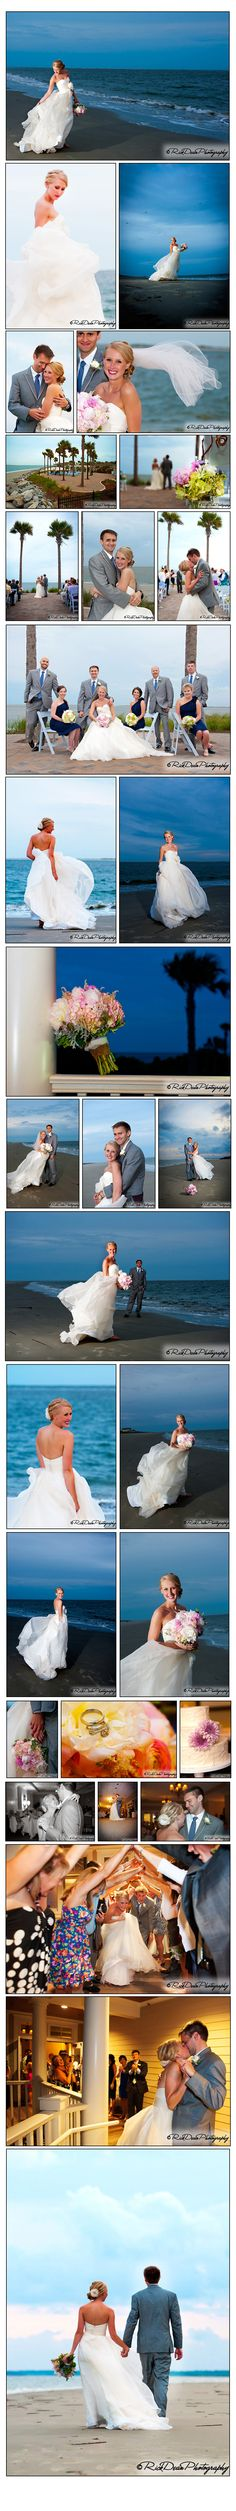 AMAZING!  Nothing could be finer.... Henderson-Houser Wedding * May 13, 2012 * ©Rick Dean Photography